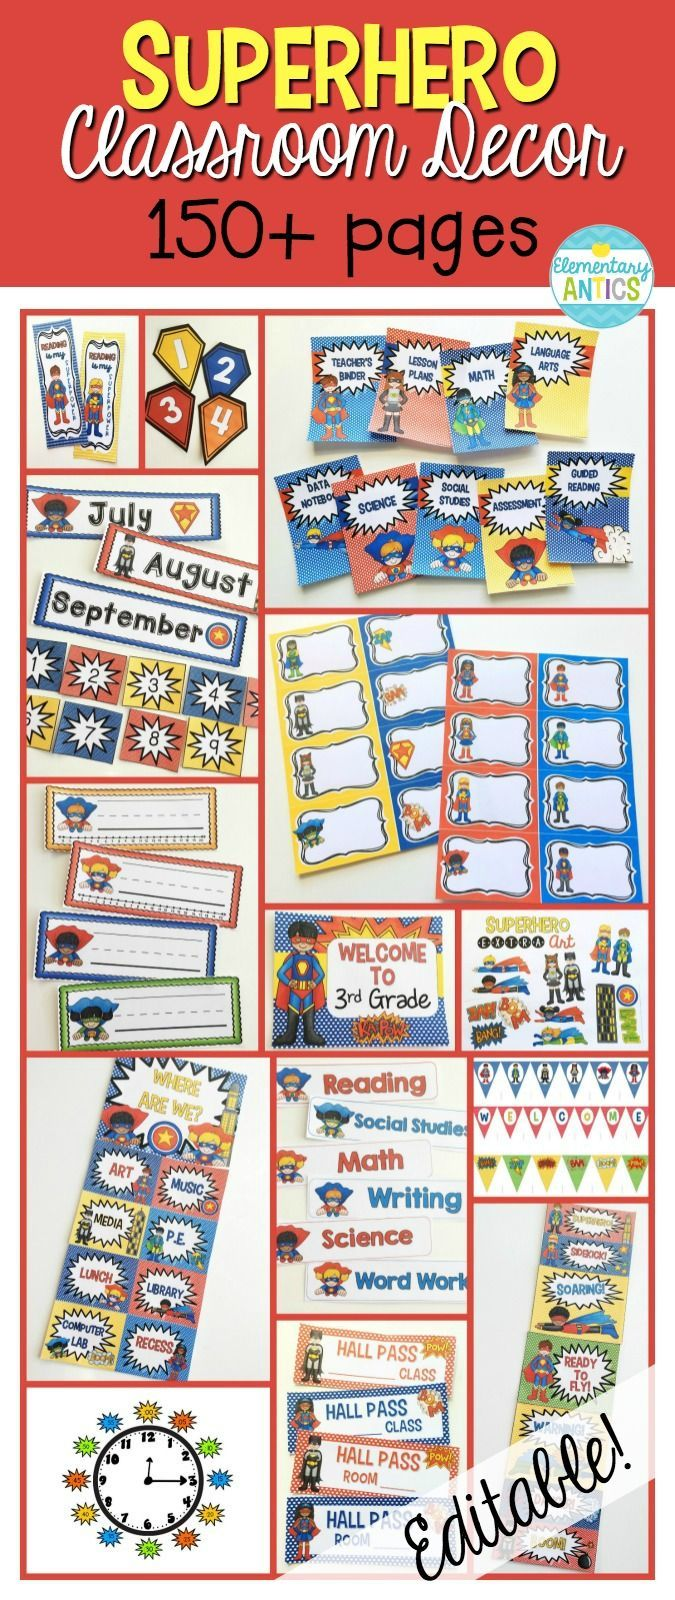 Superhero theme classroom decor with practically everything you need!  Welcome posters, calendars, binder covers, labels, banner, team numbers, behavior clip chart and MORE!